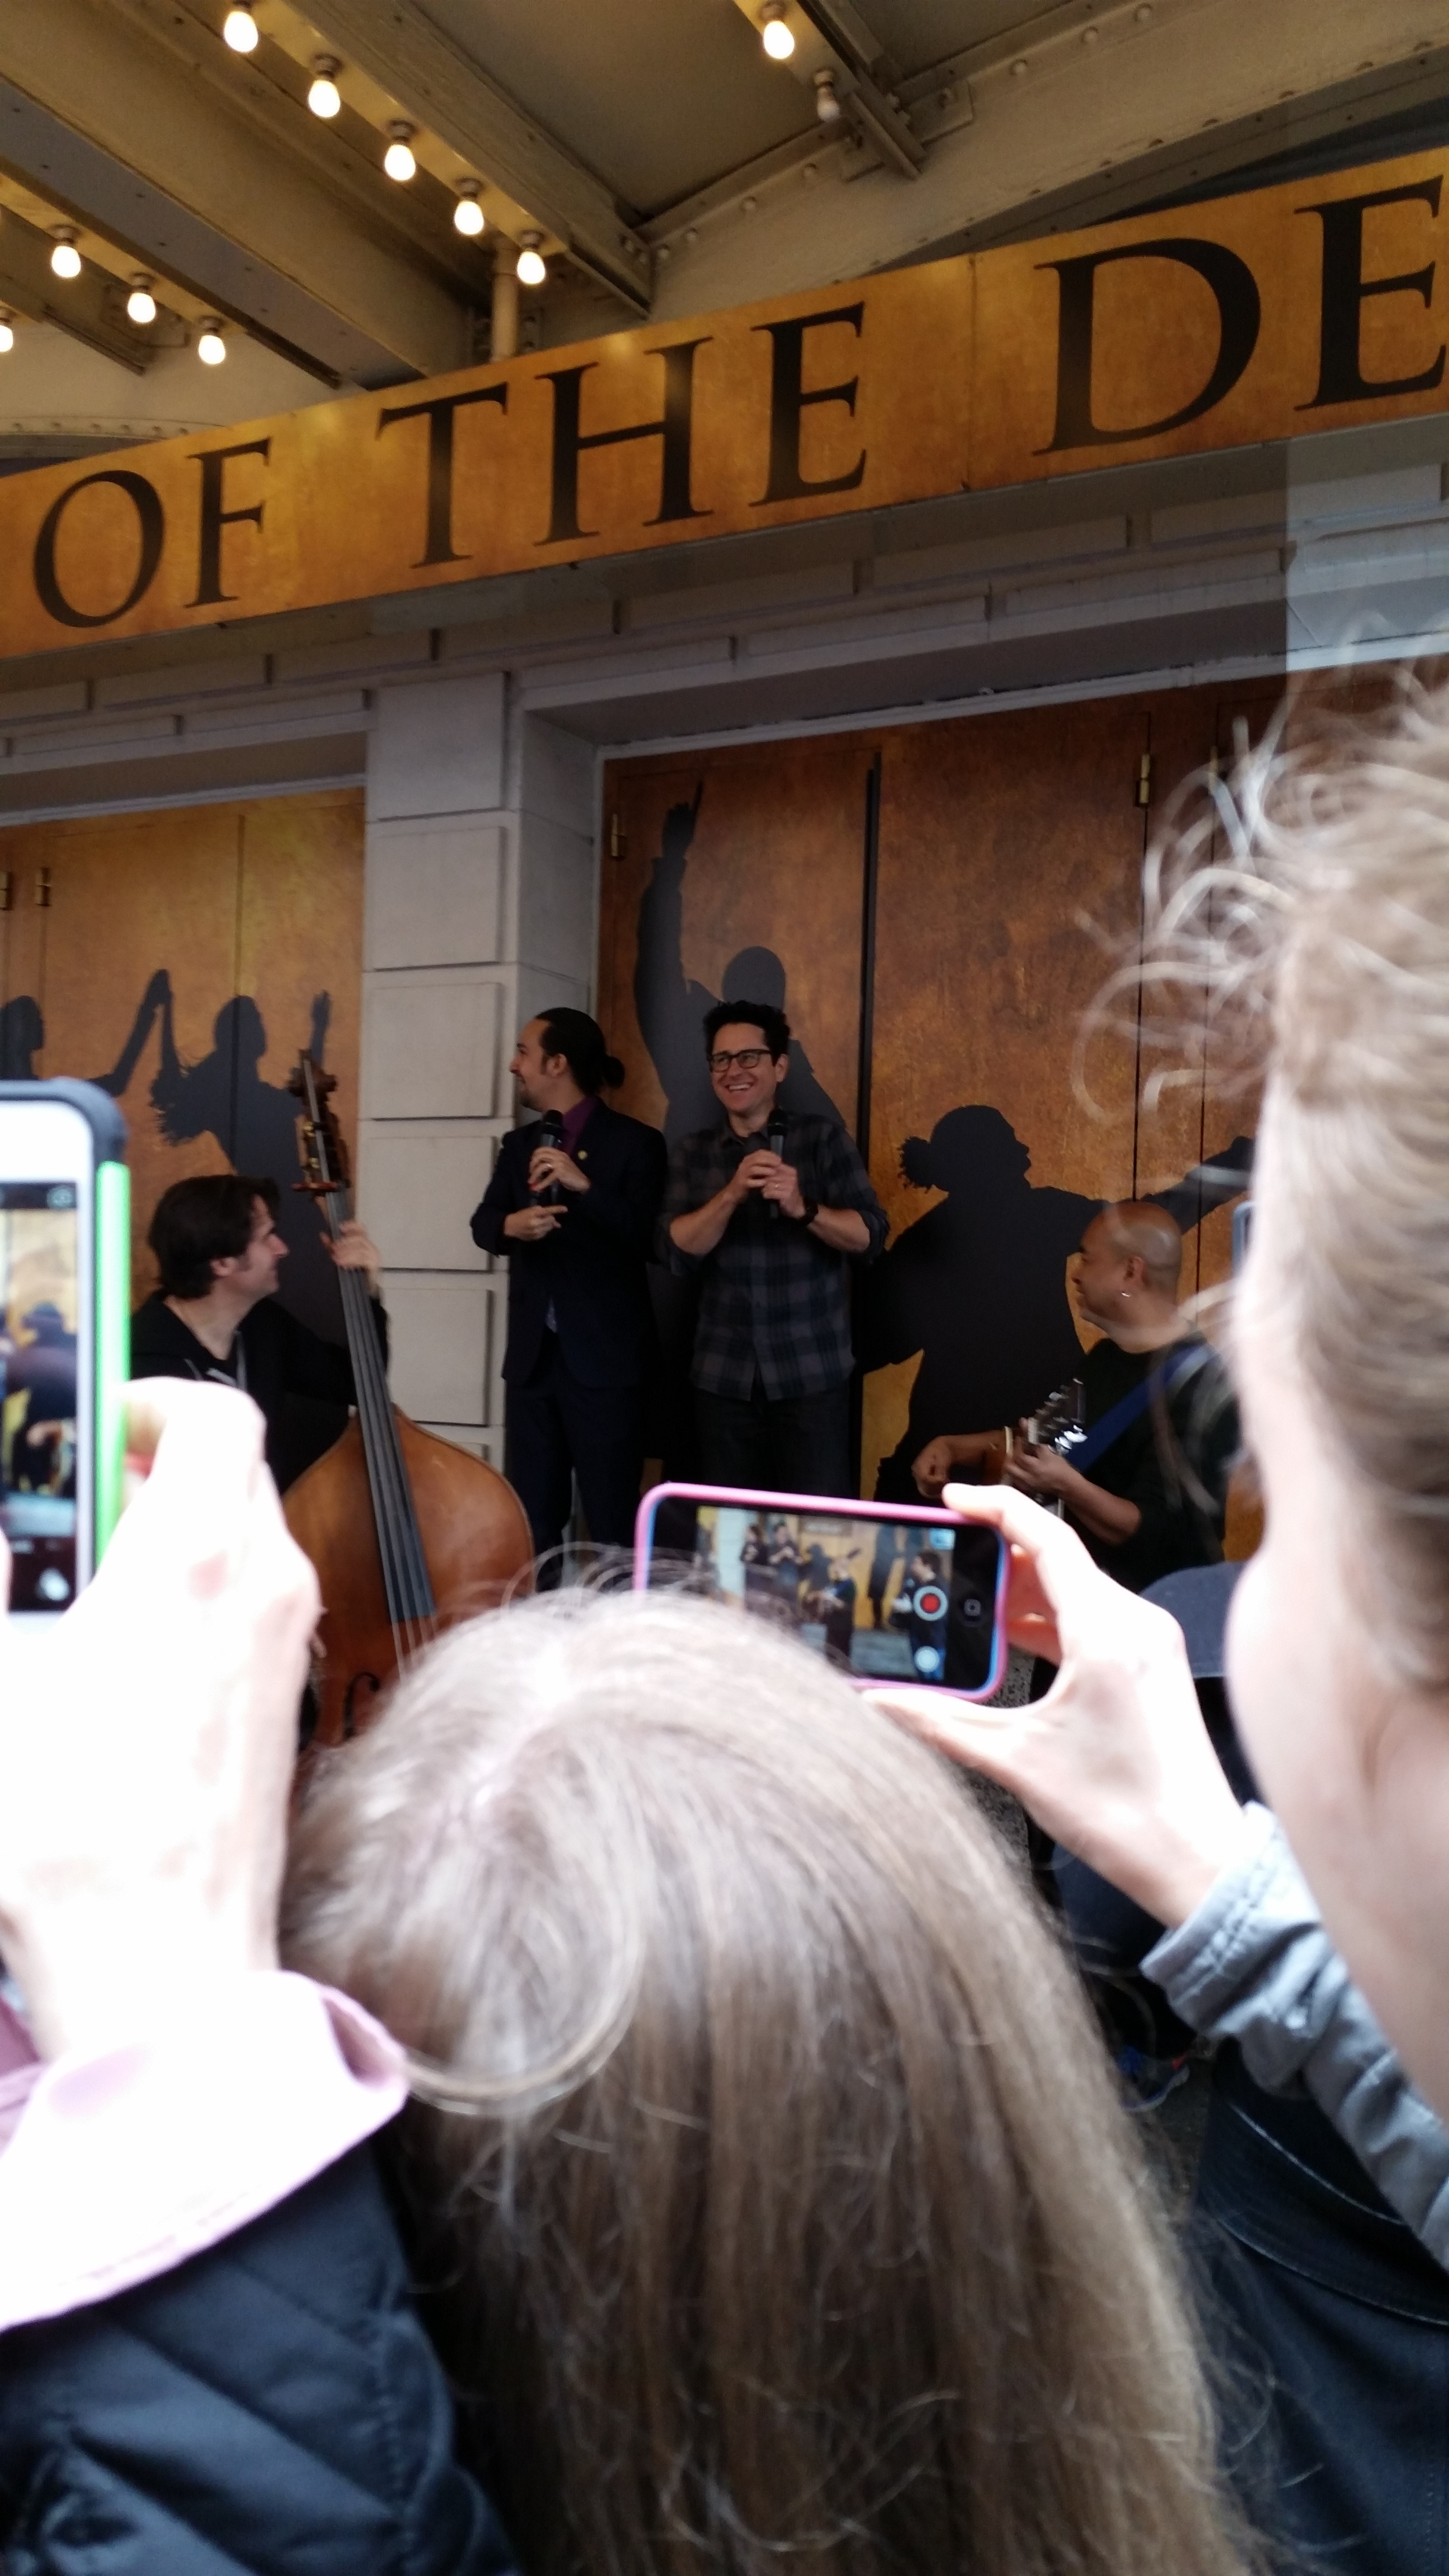 I took this picture! Of Lin-Manual Miranda, JJ Abrams, Alex Lacamoire, and some of the Ham band!